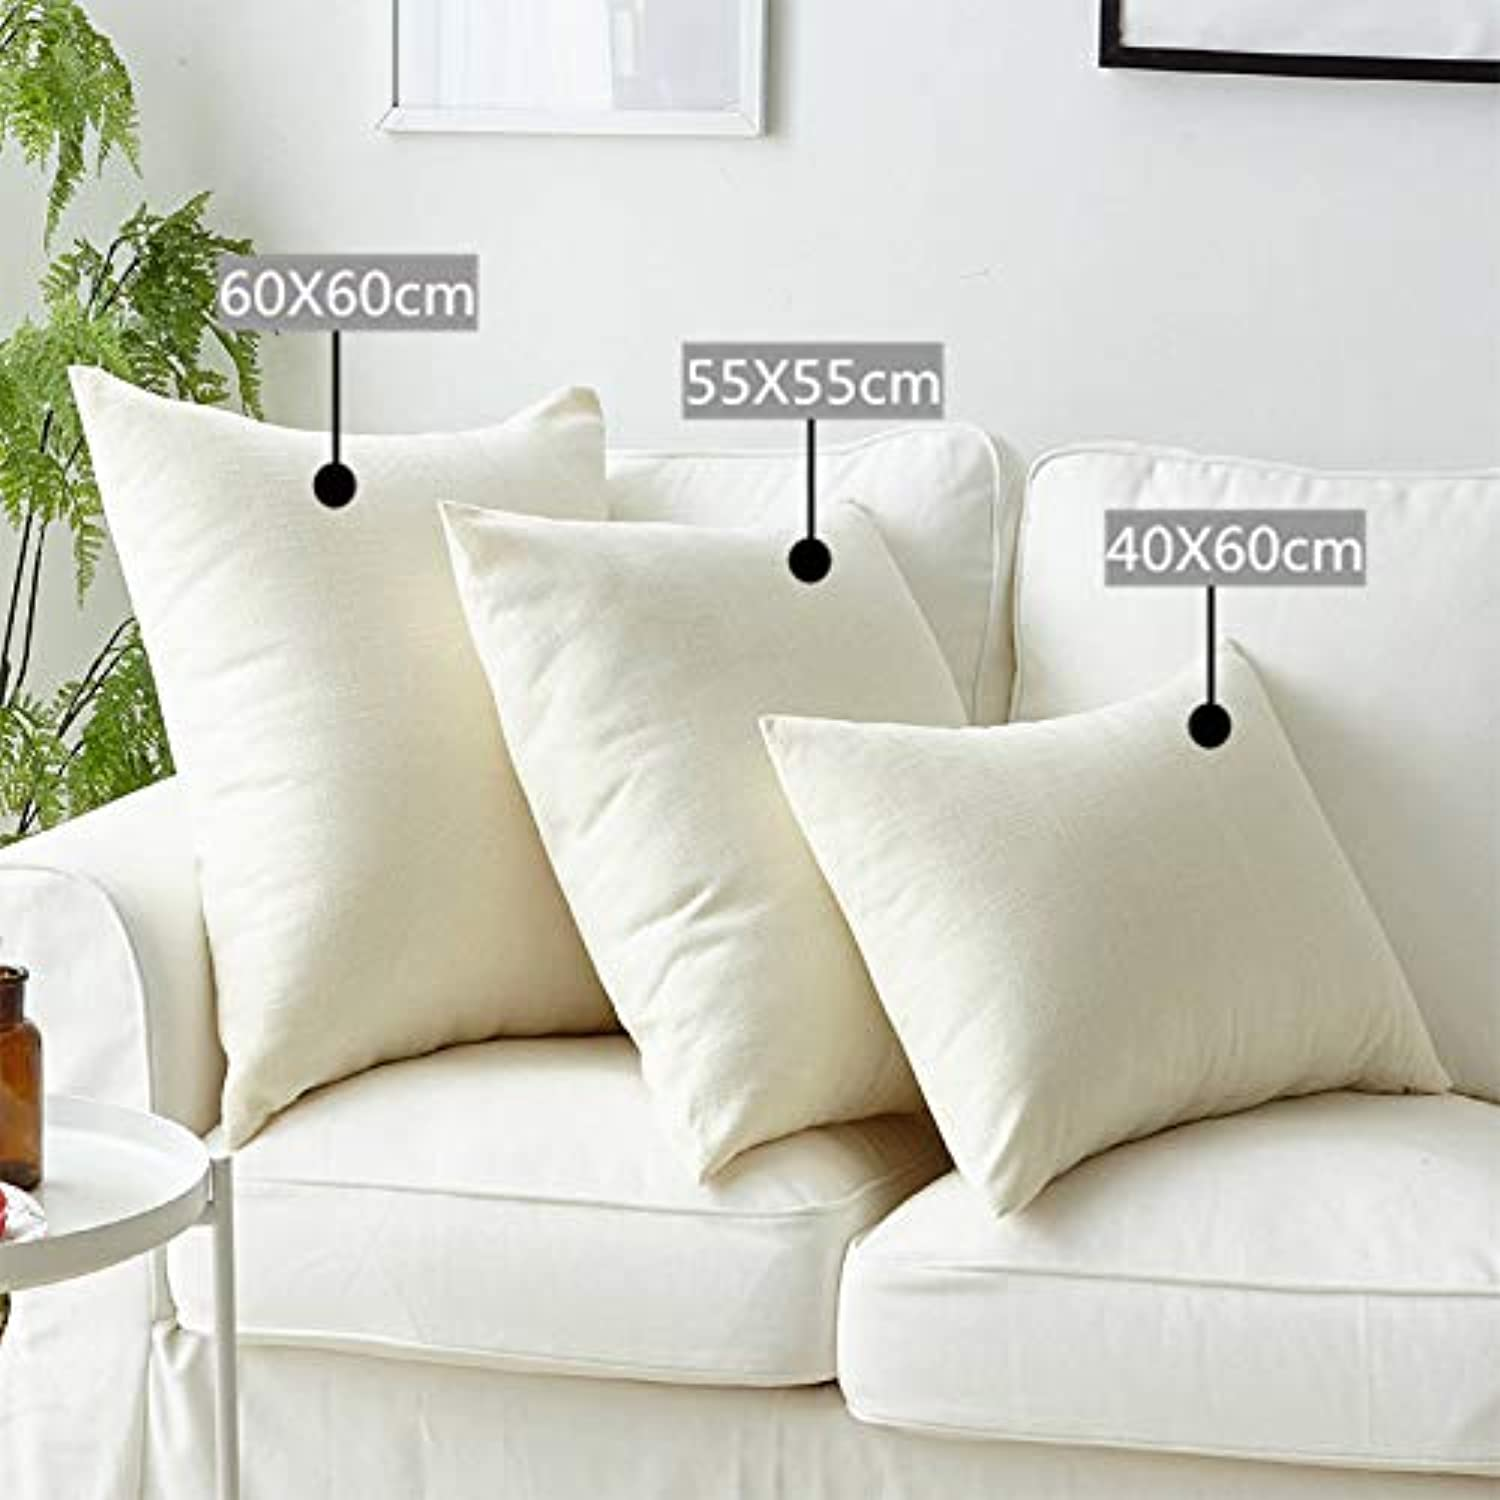 SHLMM 3 Packs Linen Pure color Throw Pillow Different Cushion Suitable for Sofa Bed Cars Multifunctional Cushion for Home